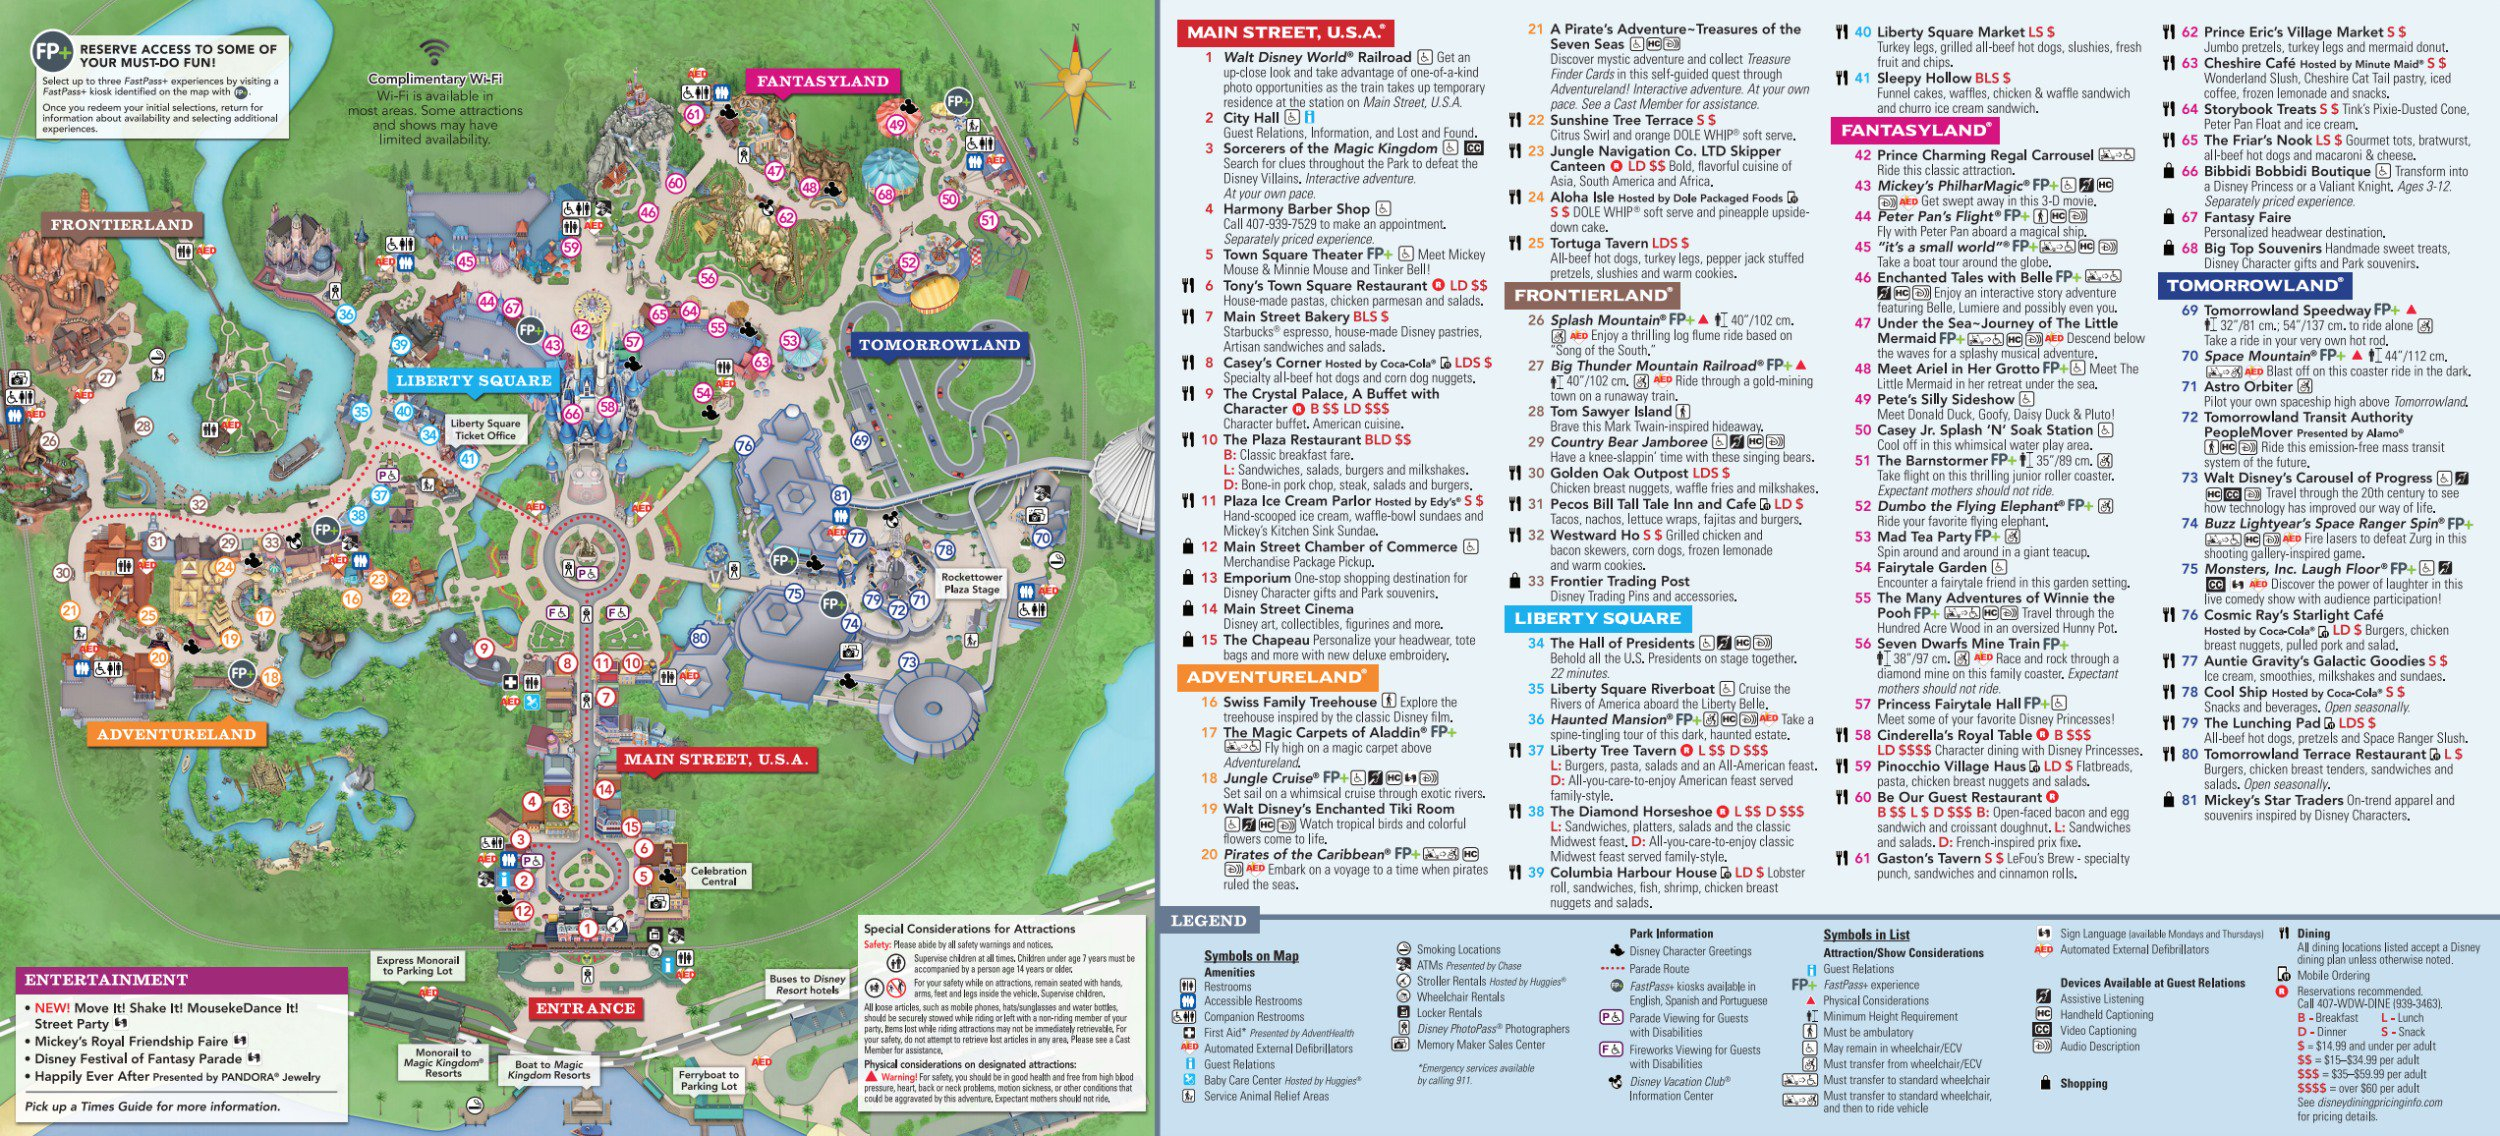 Magic Kingdom Park Map - Walt Disney World - Disney World Florida Theme Park Maps